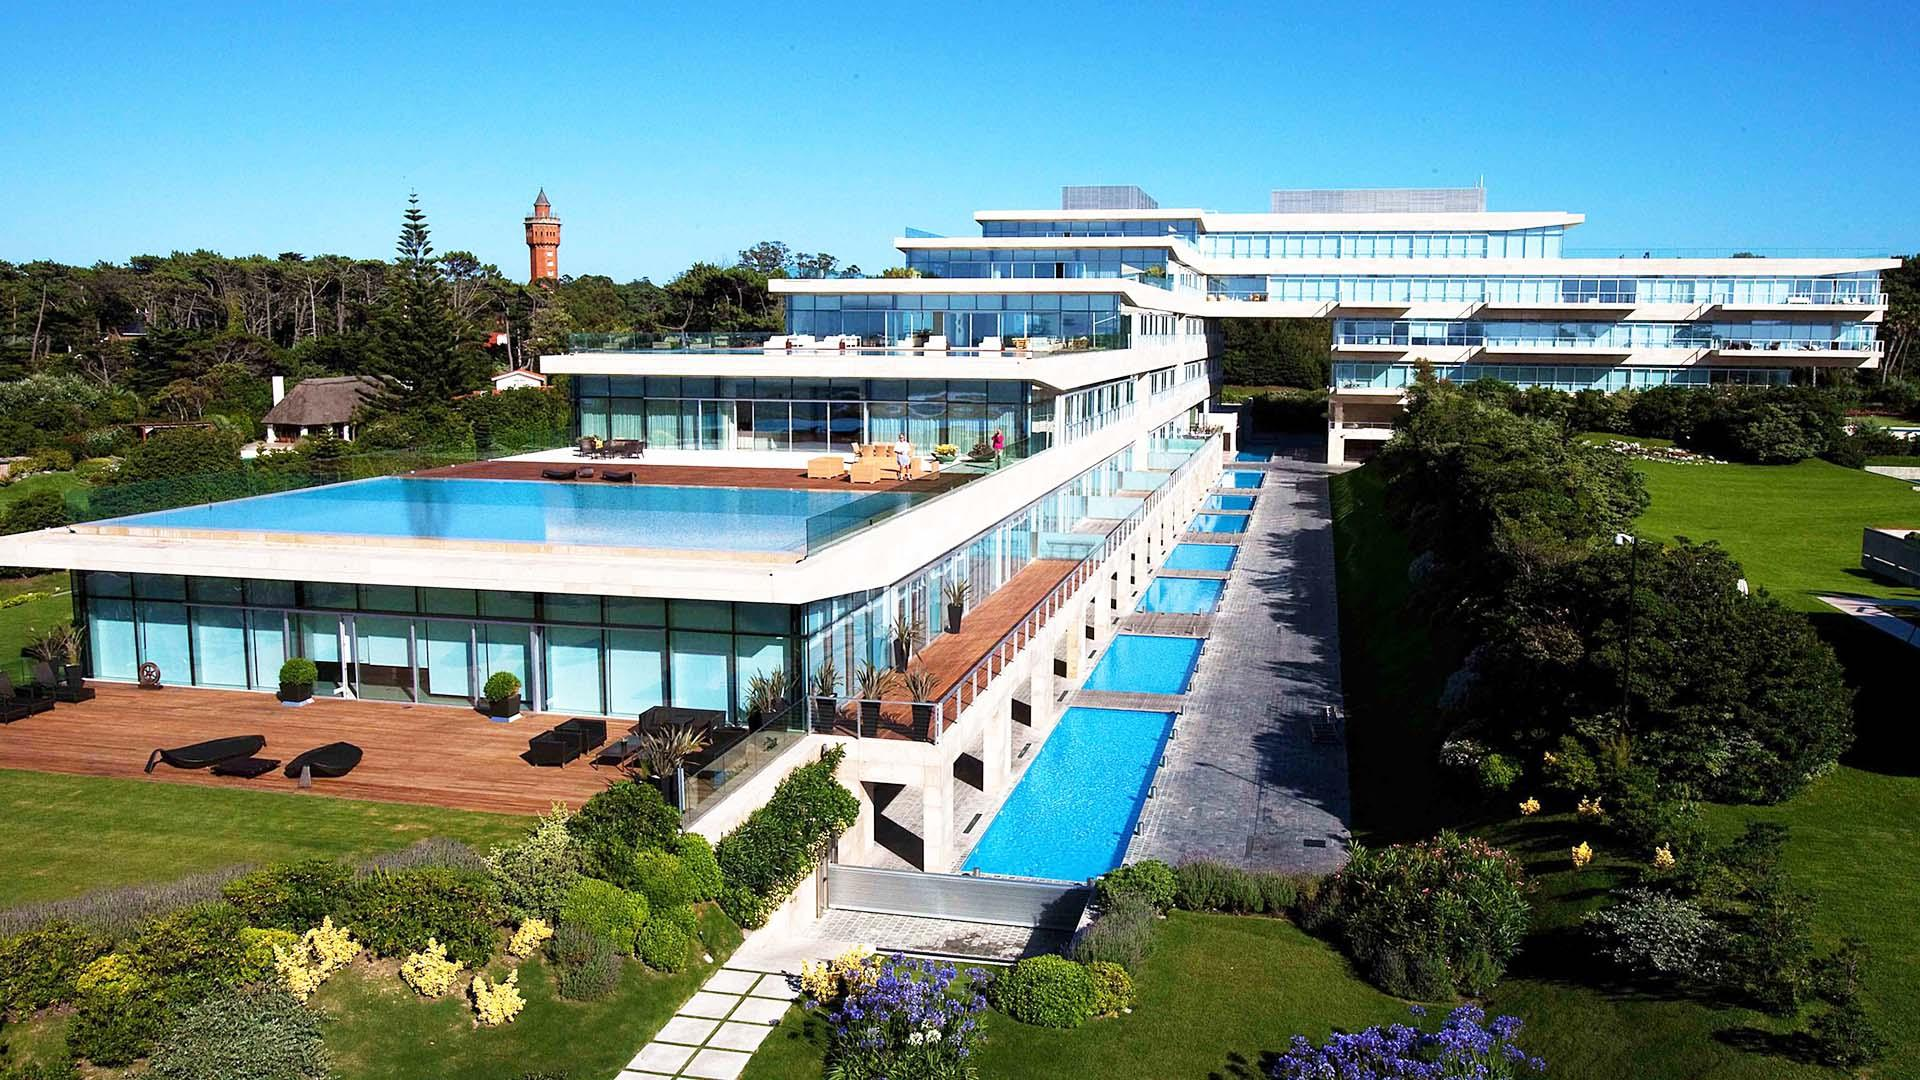 Impressive Condo with Ocean Views located in Punta del Este, Punta del Este, Uruguay, listed by Curiocity Villas.